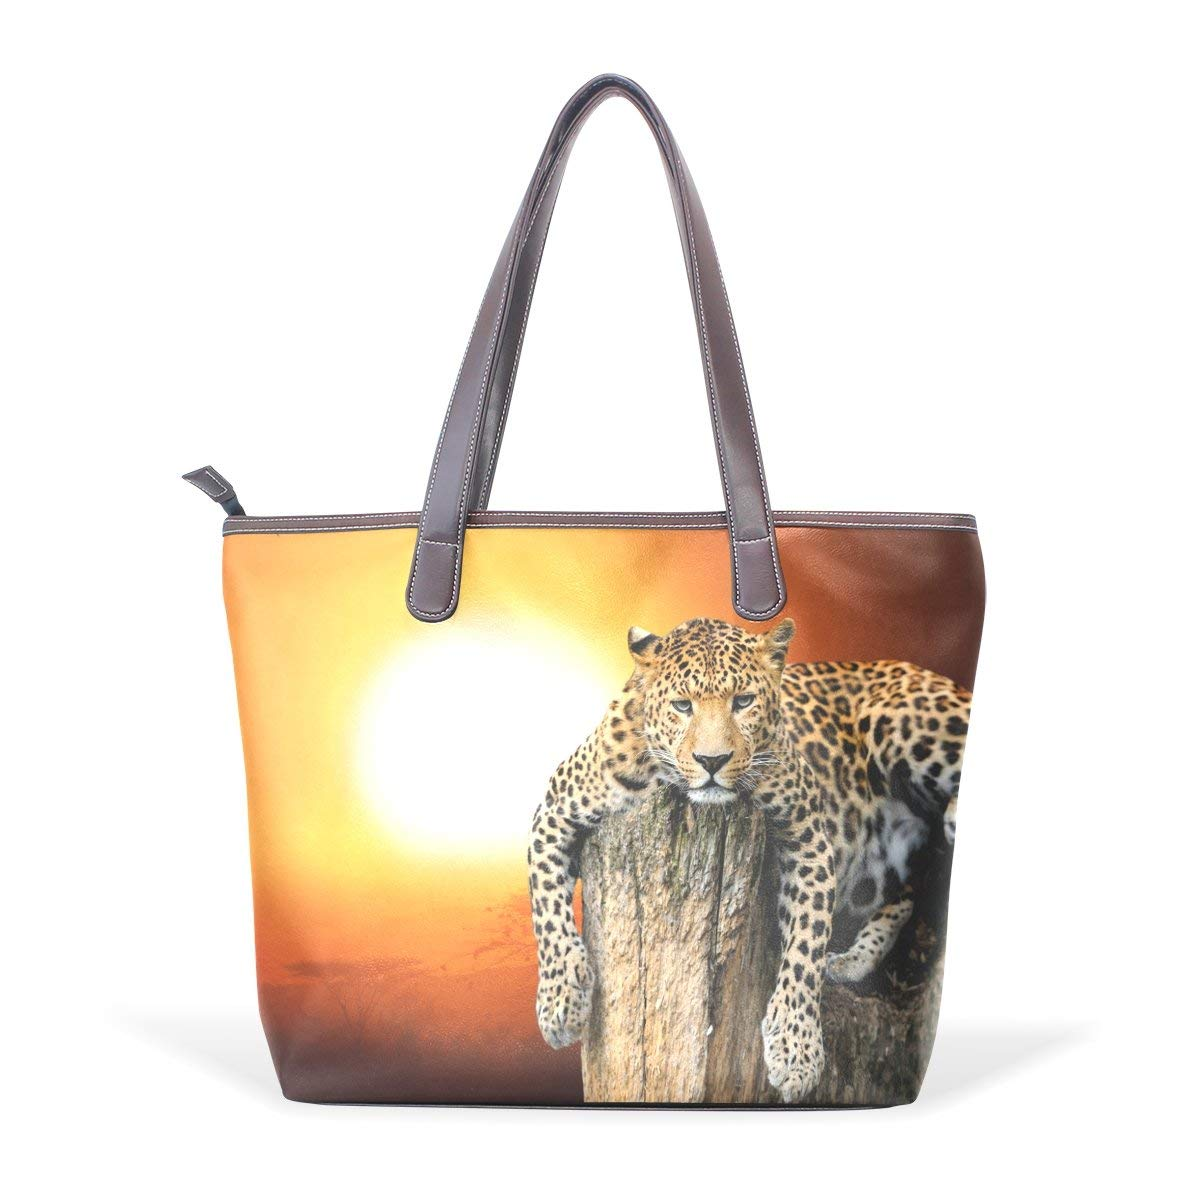 Leopard Pattern Print Womens Fashion Large Tote Ladies Handbag Shoulder Bag